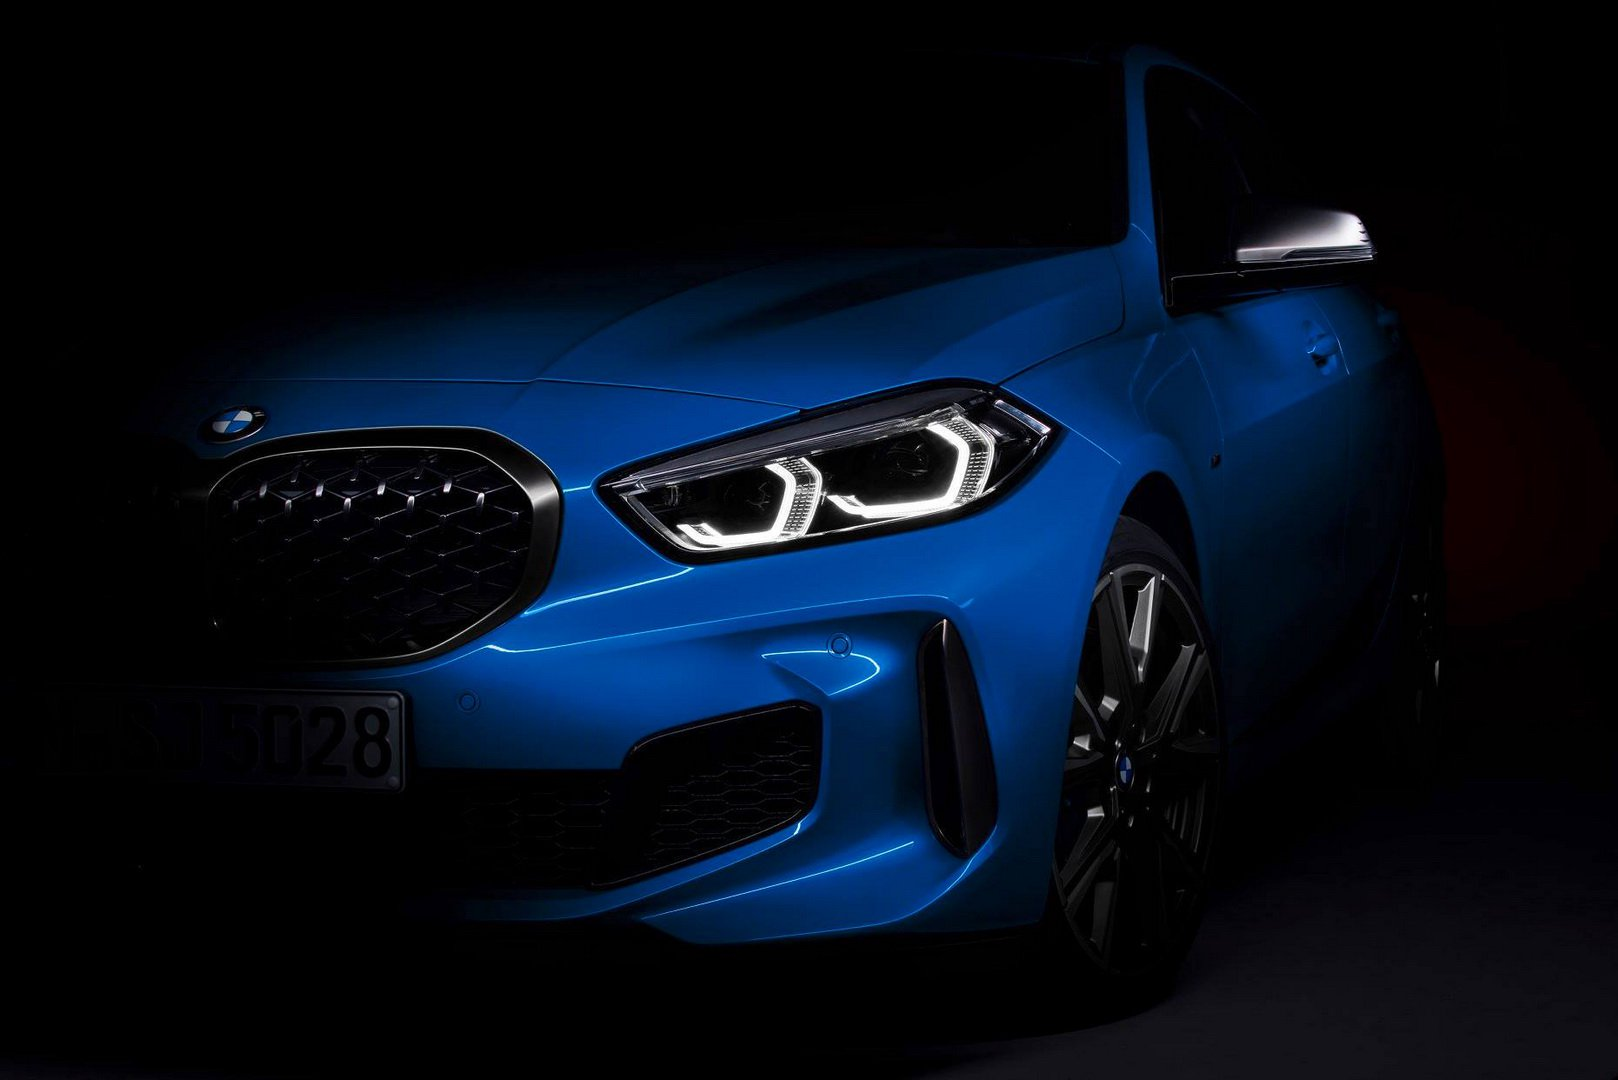 2019 BMW 1 Series image 1